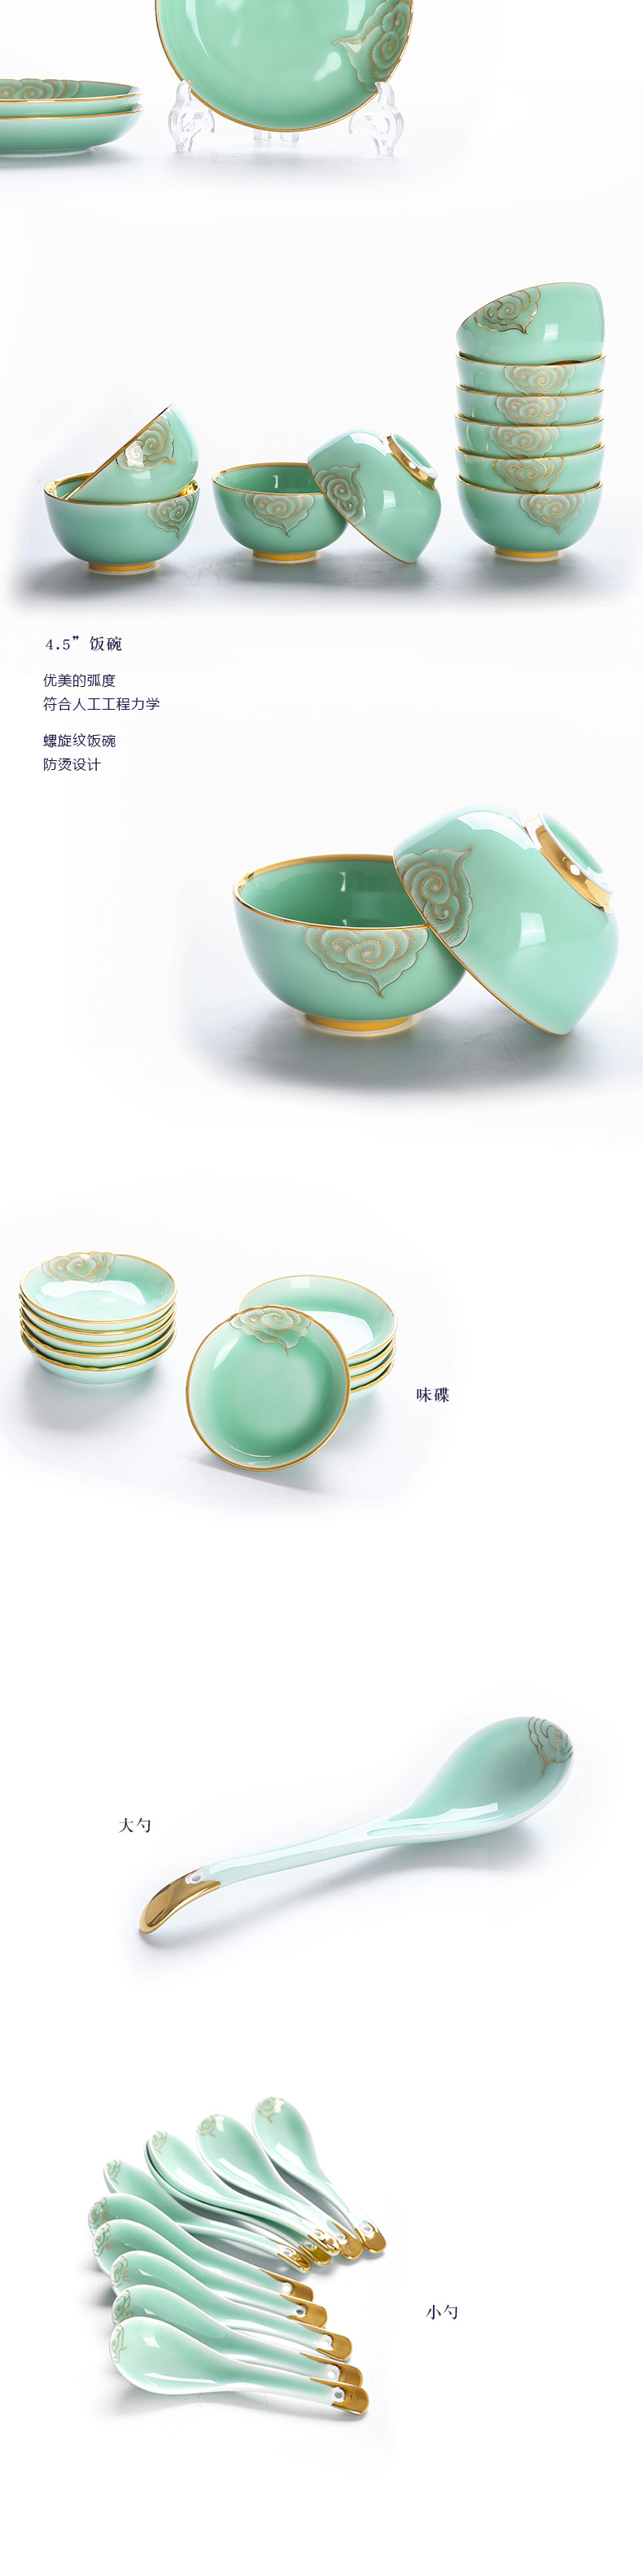 Hand - made celadon dishes Chinese style up phnom penh high - end dishes of jingdezhen ceramic celadon carved tableware tableware suit